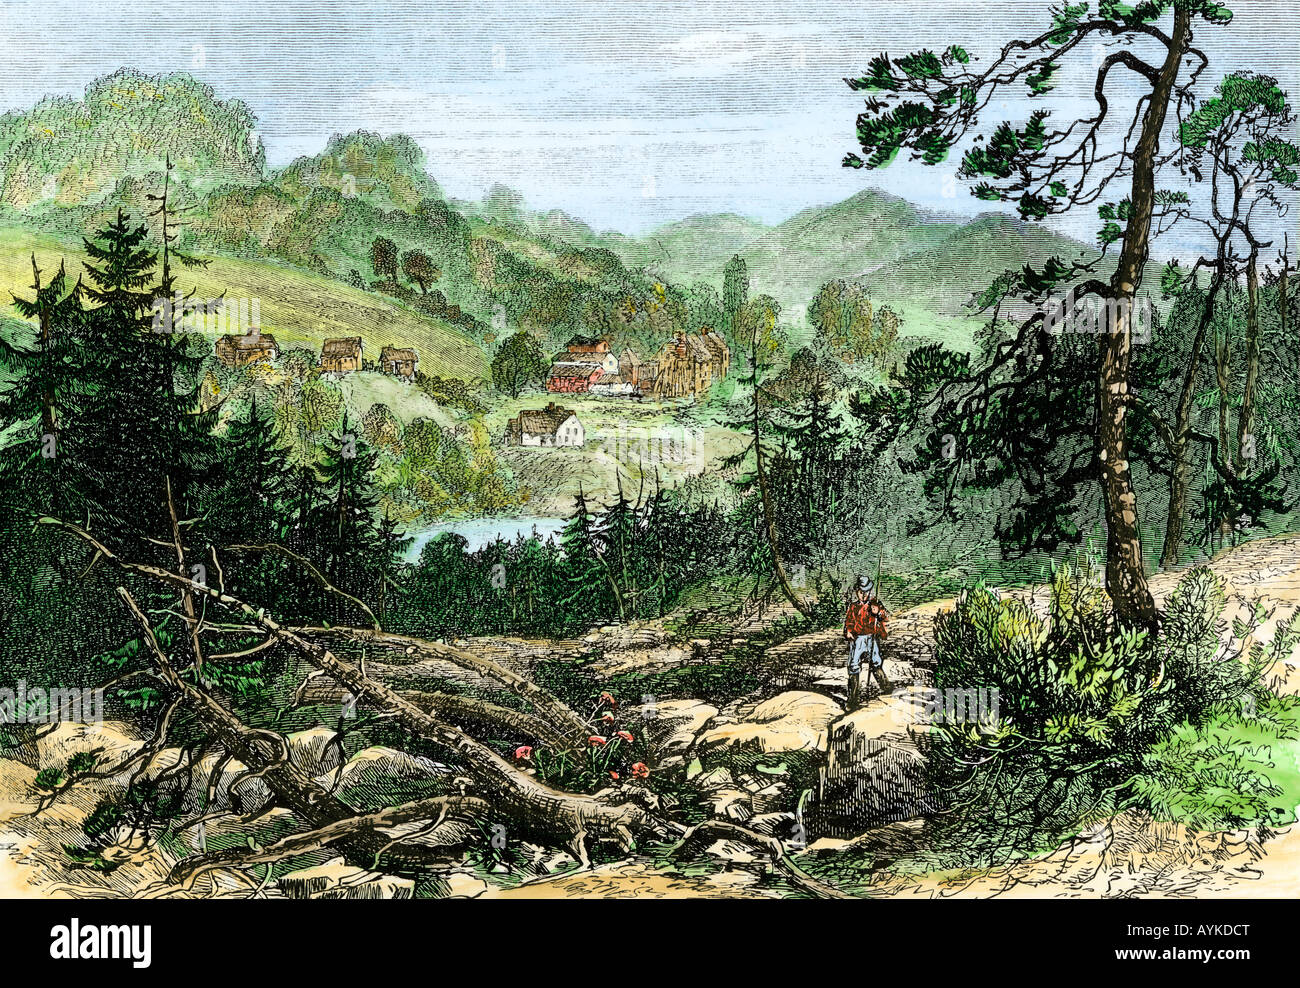 Canadian pioneer settlement on the frontier 1800s. Hand-colored woodcut - Stock Image